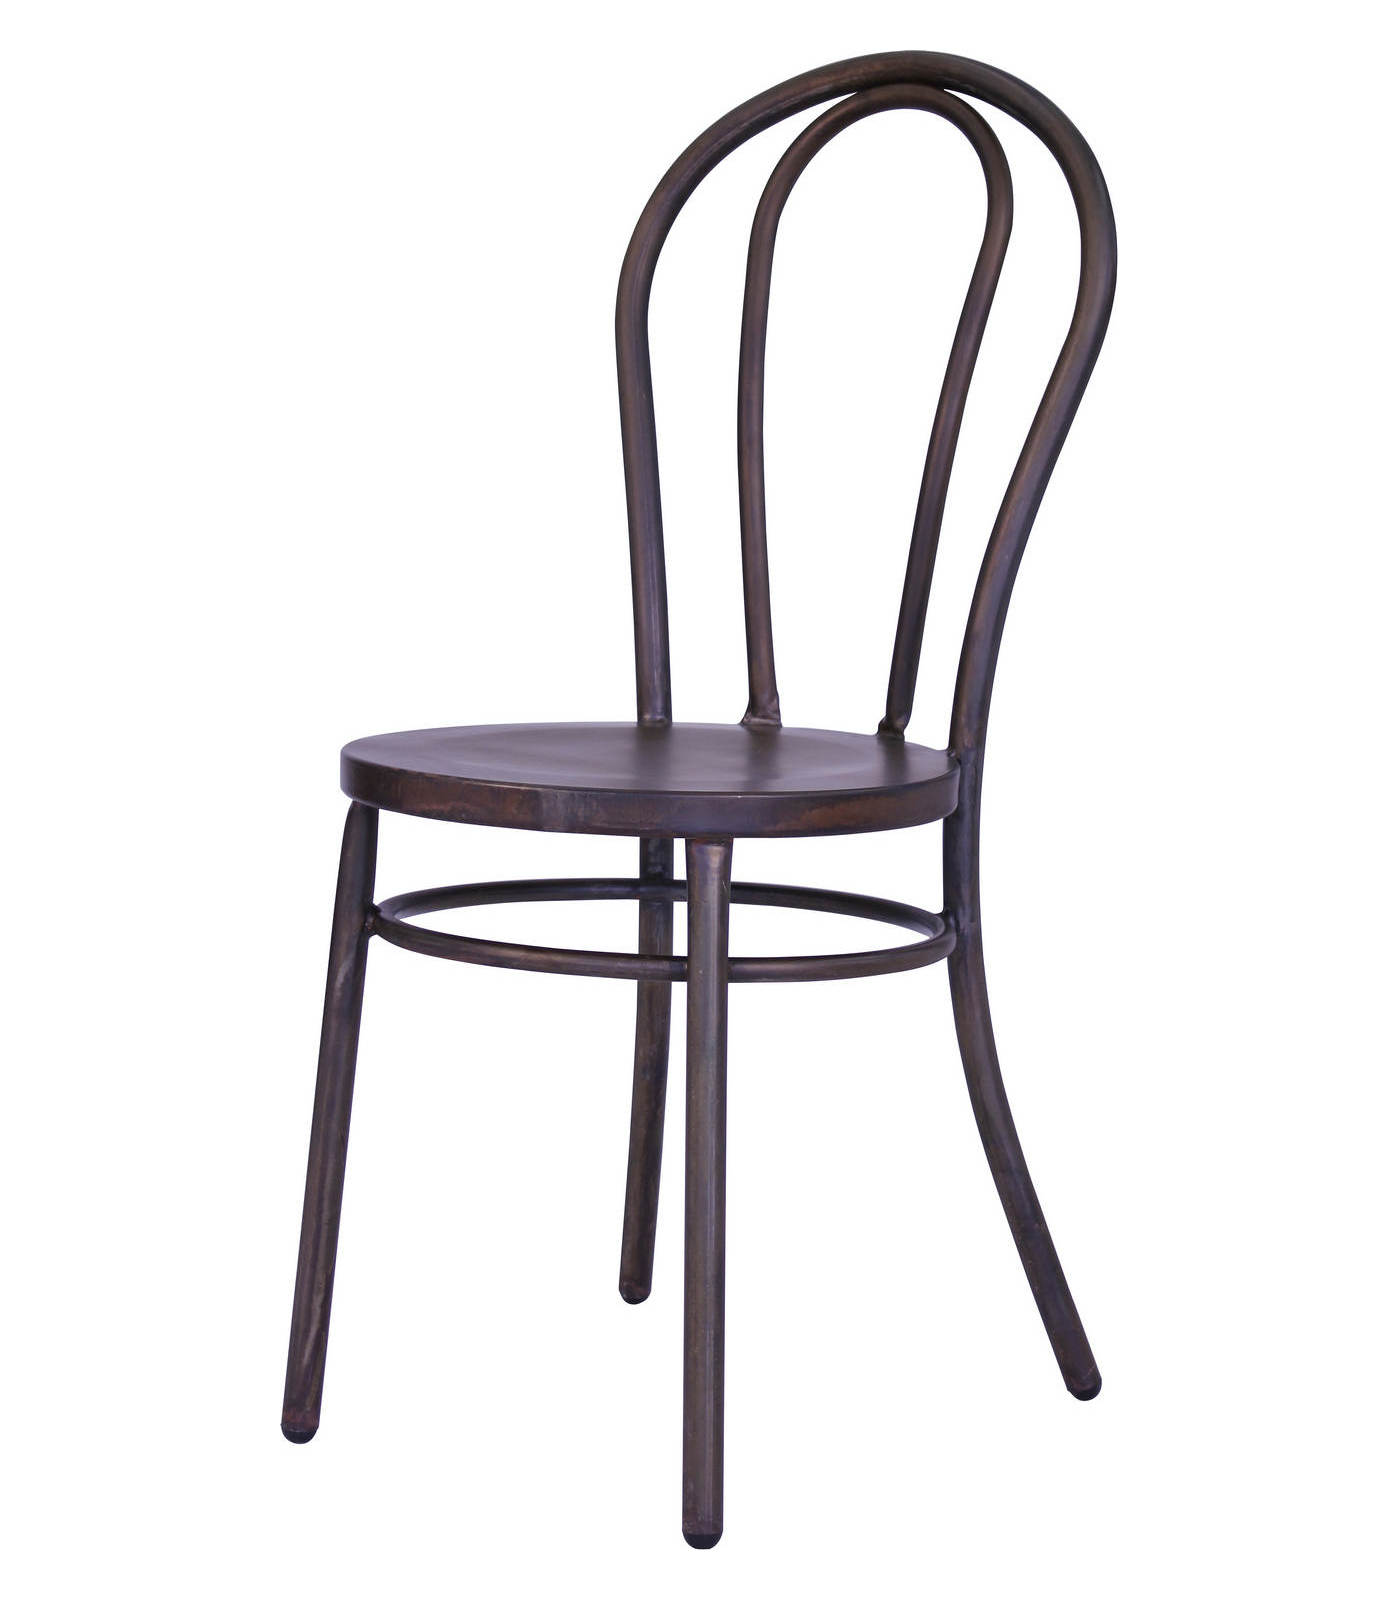 Metal Chair And Table Metal Chair And Table Suppliers and